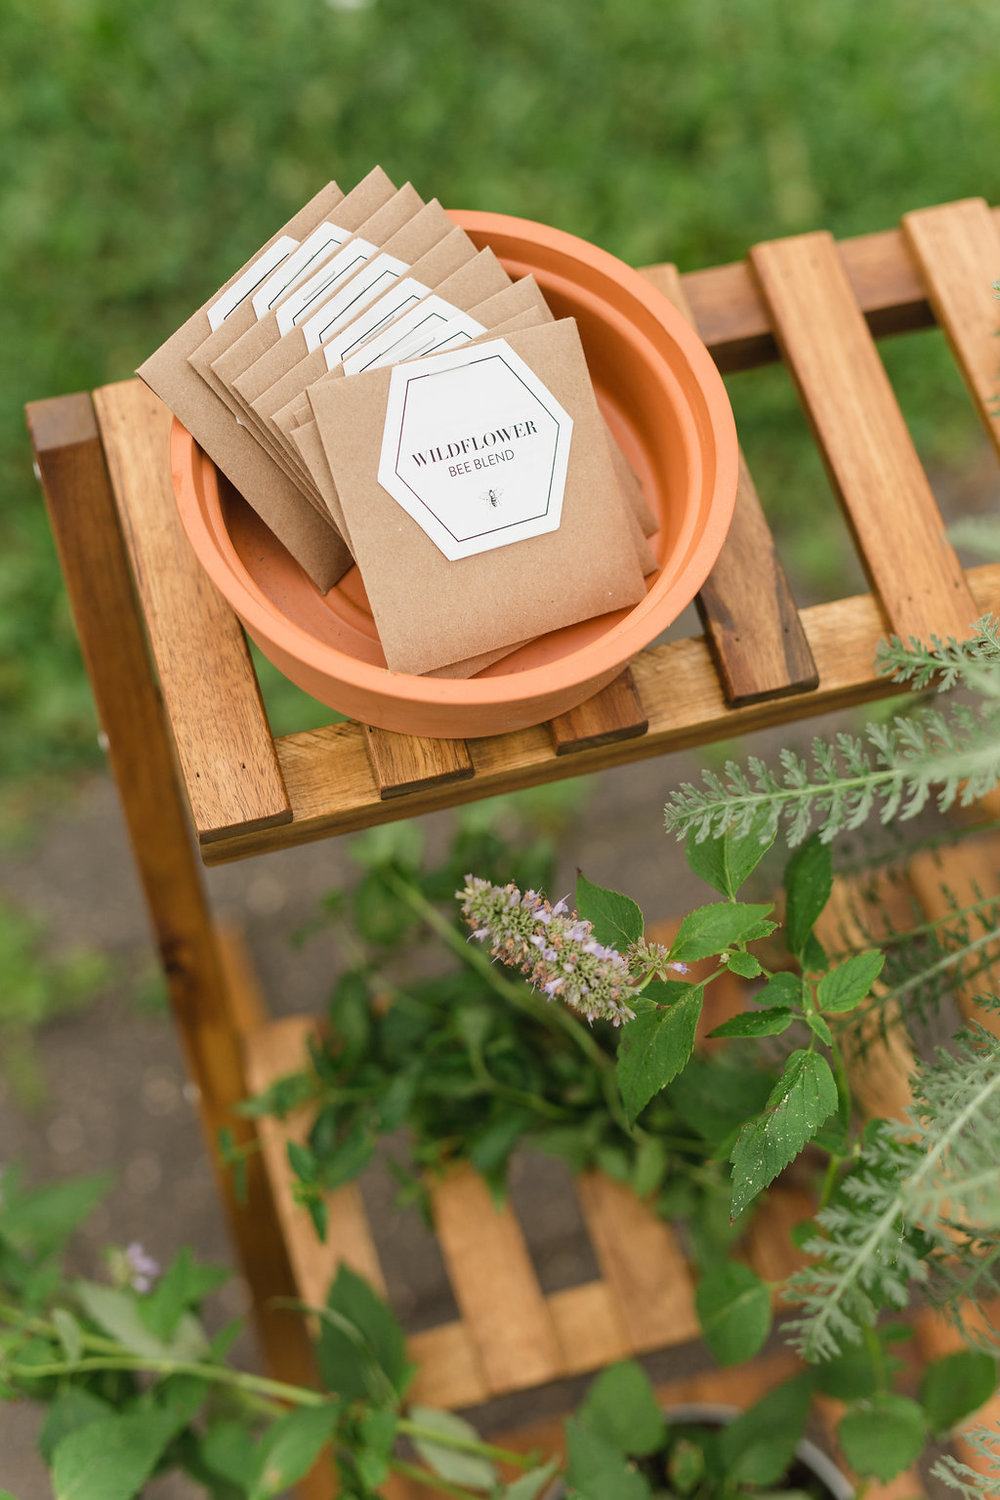 Wildflower Seed Packaging